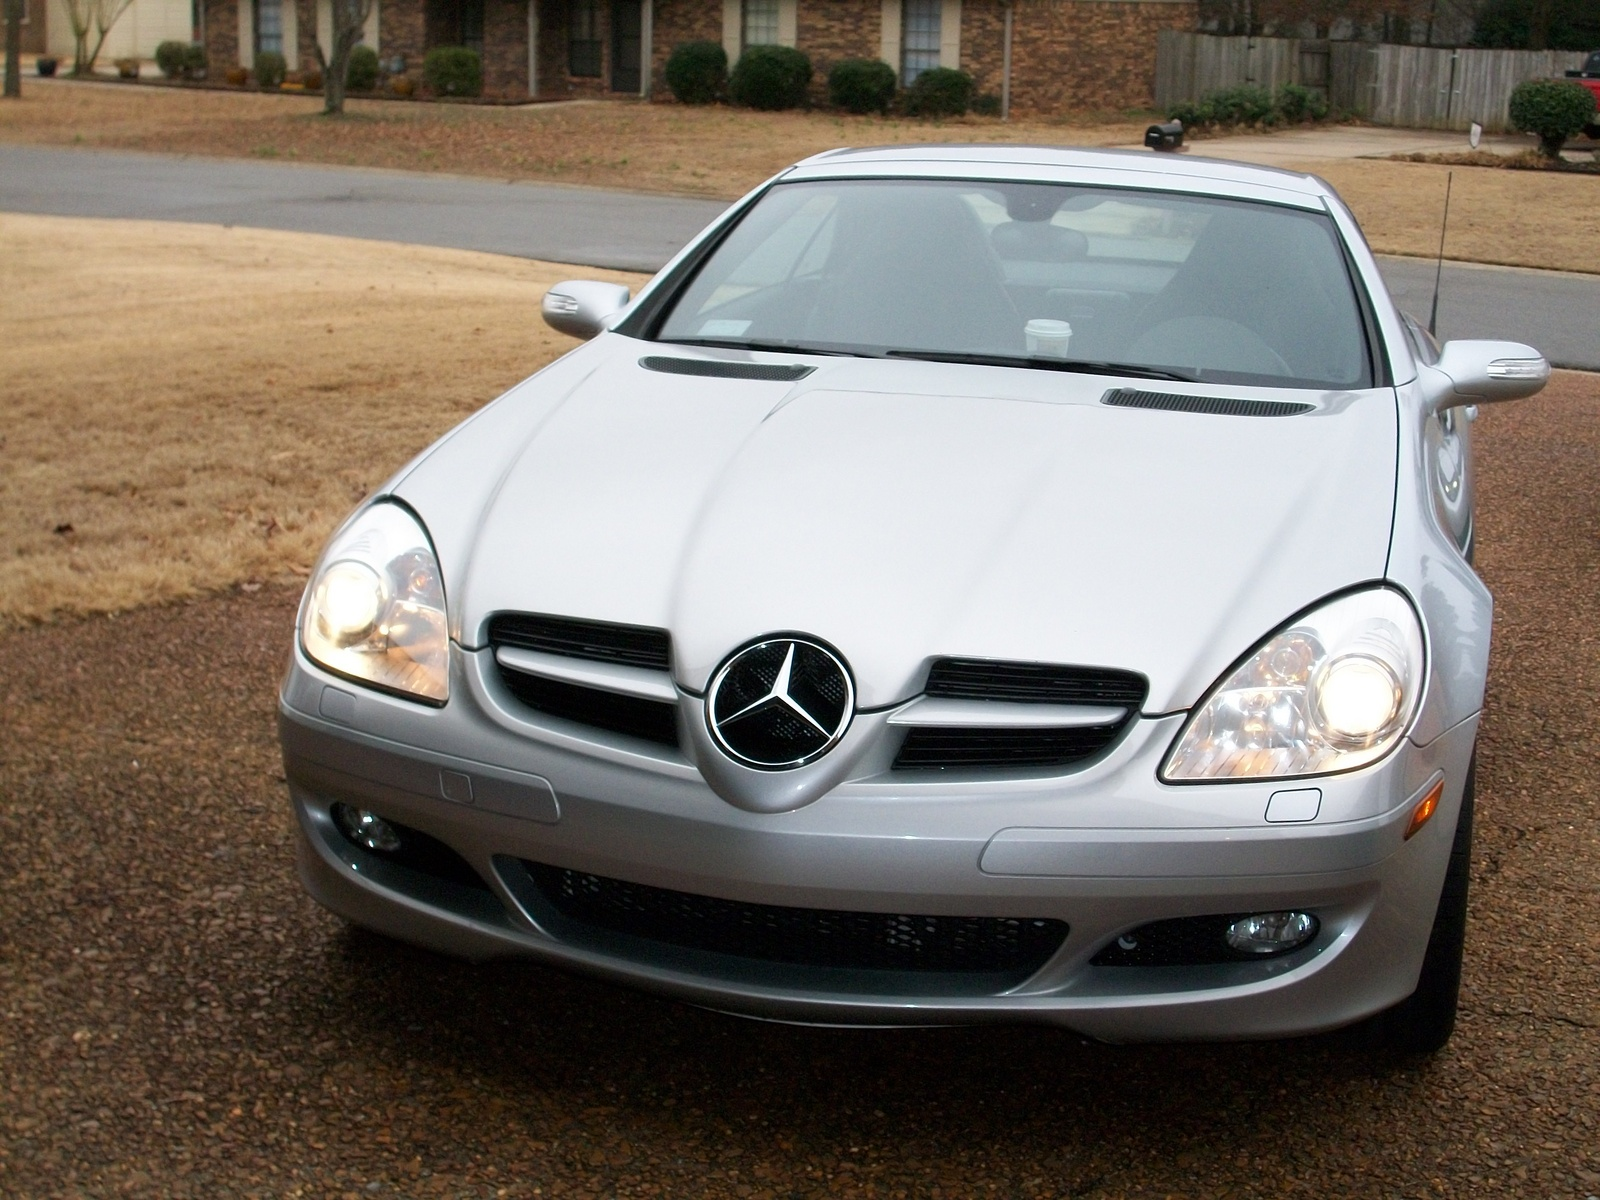 2005 mercedes benz slk350 for sale for Mercedes benz for sale cargurus